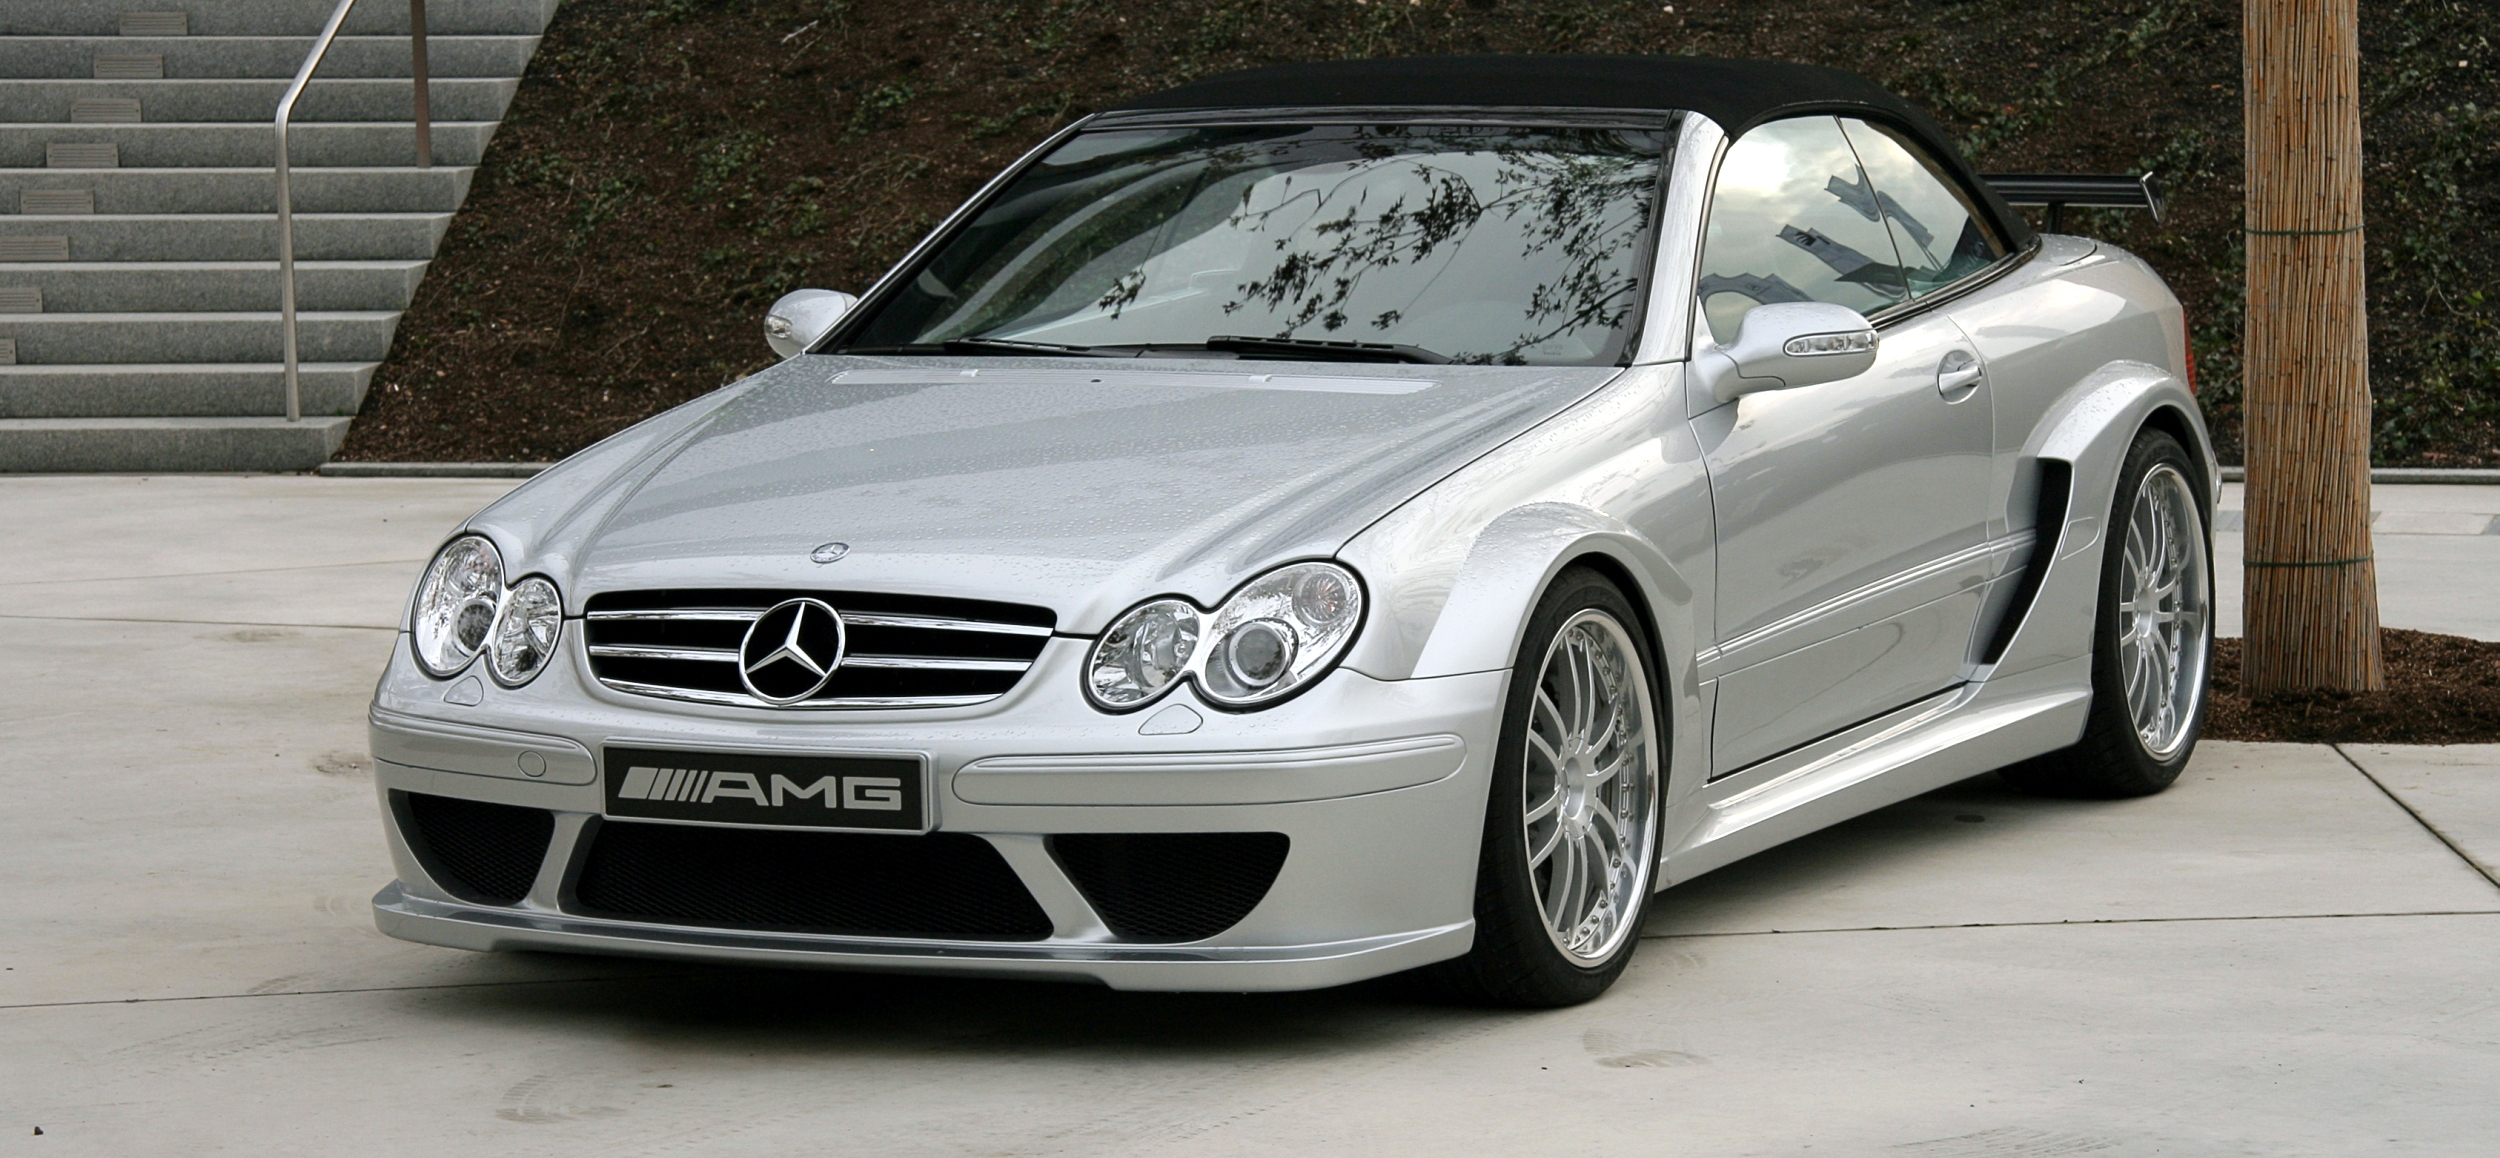 mercedes clk wallpaper #7